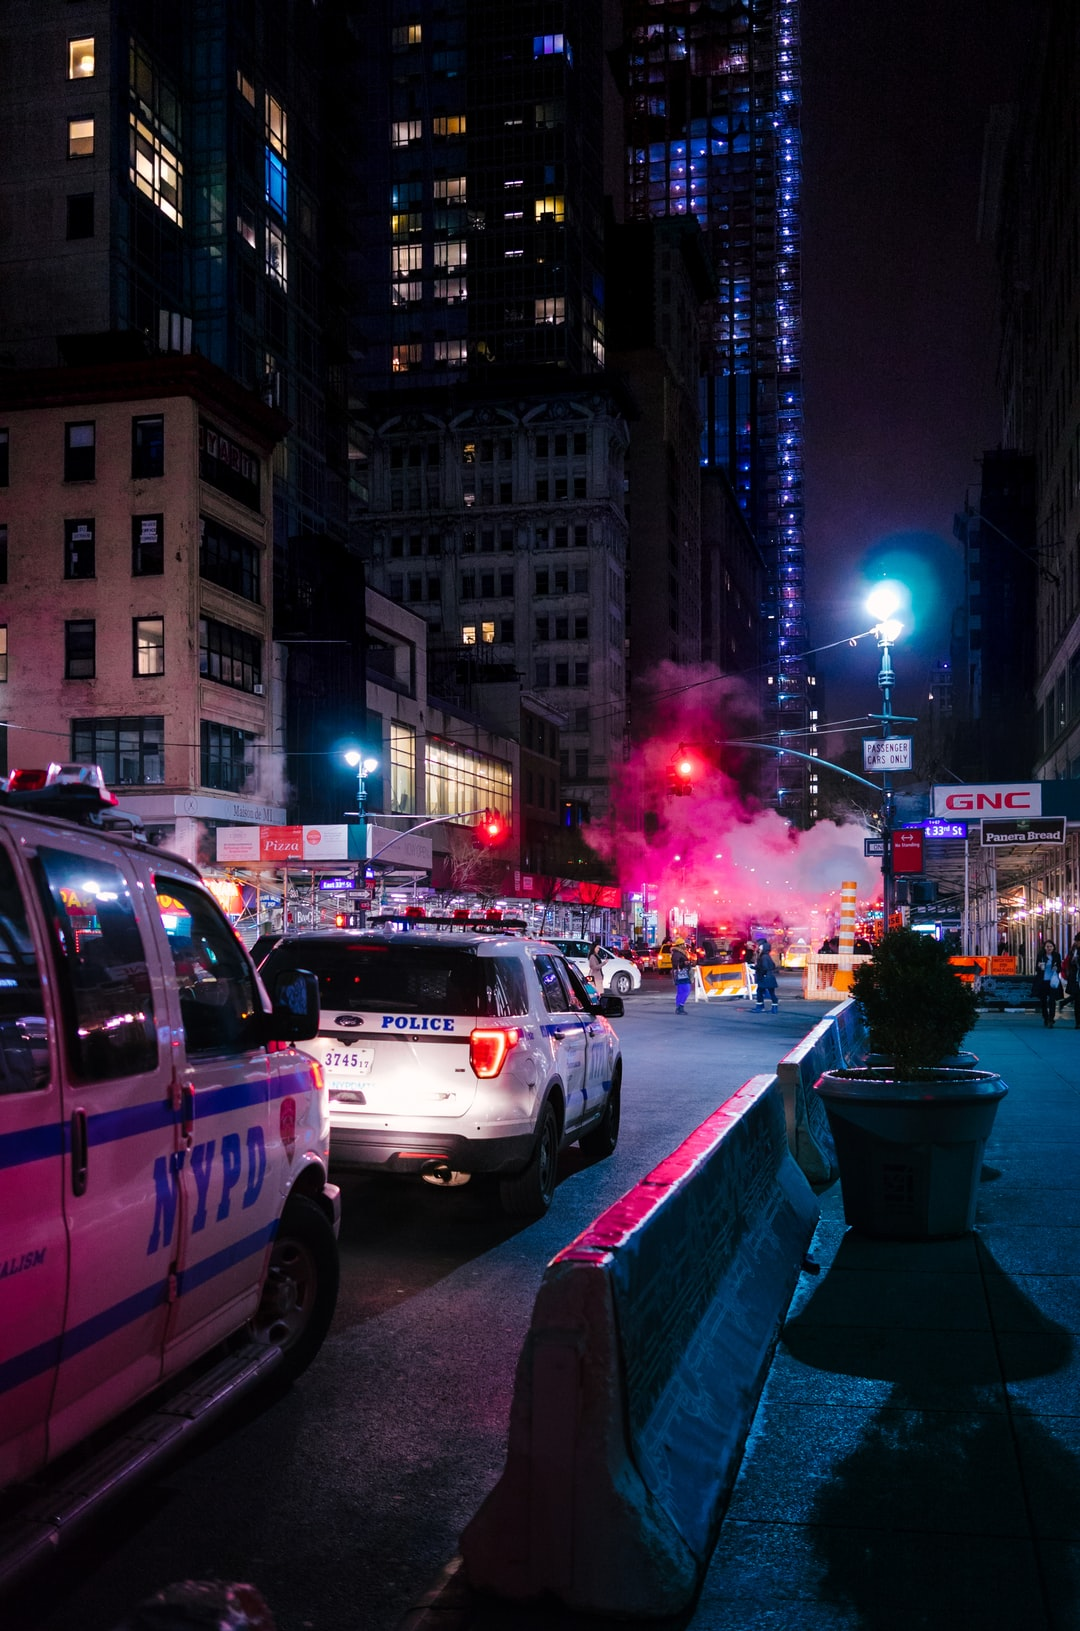 Nypd Pictures [HD] | Download Free Images on Unsplash